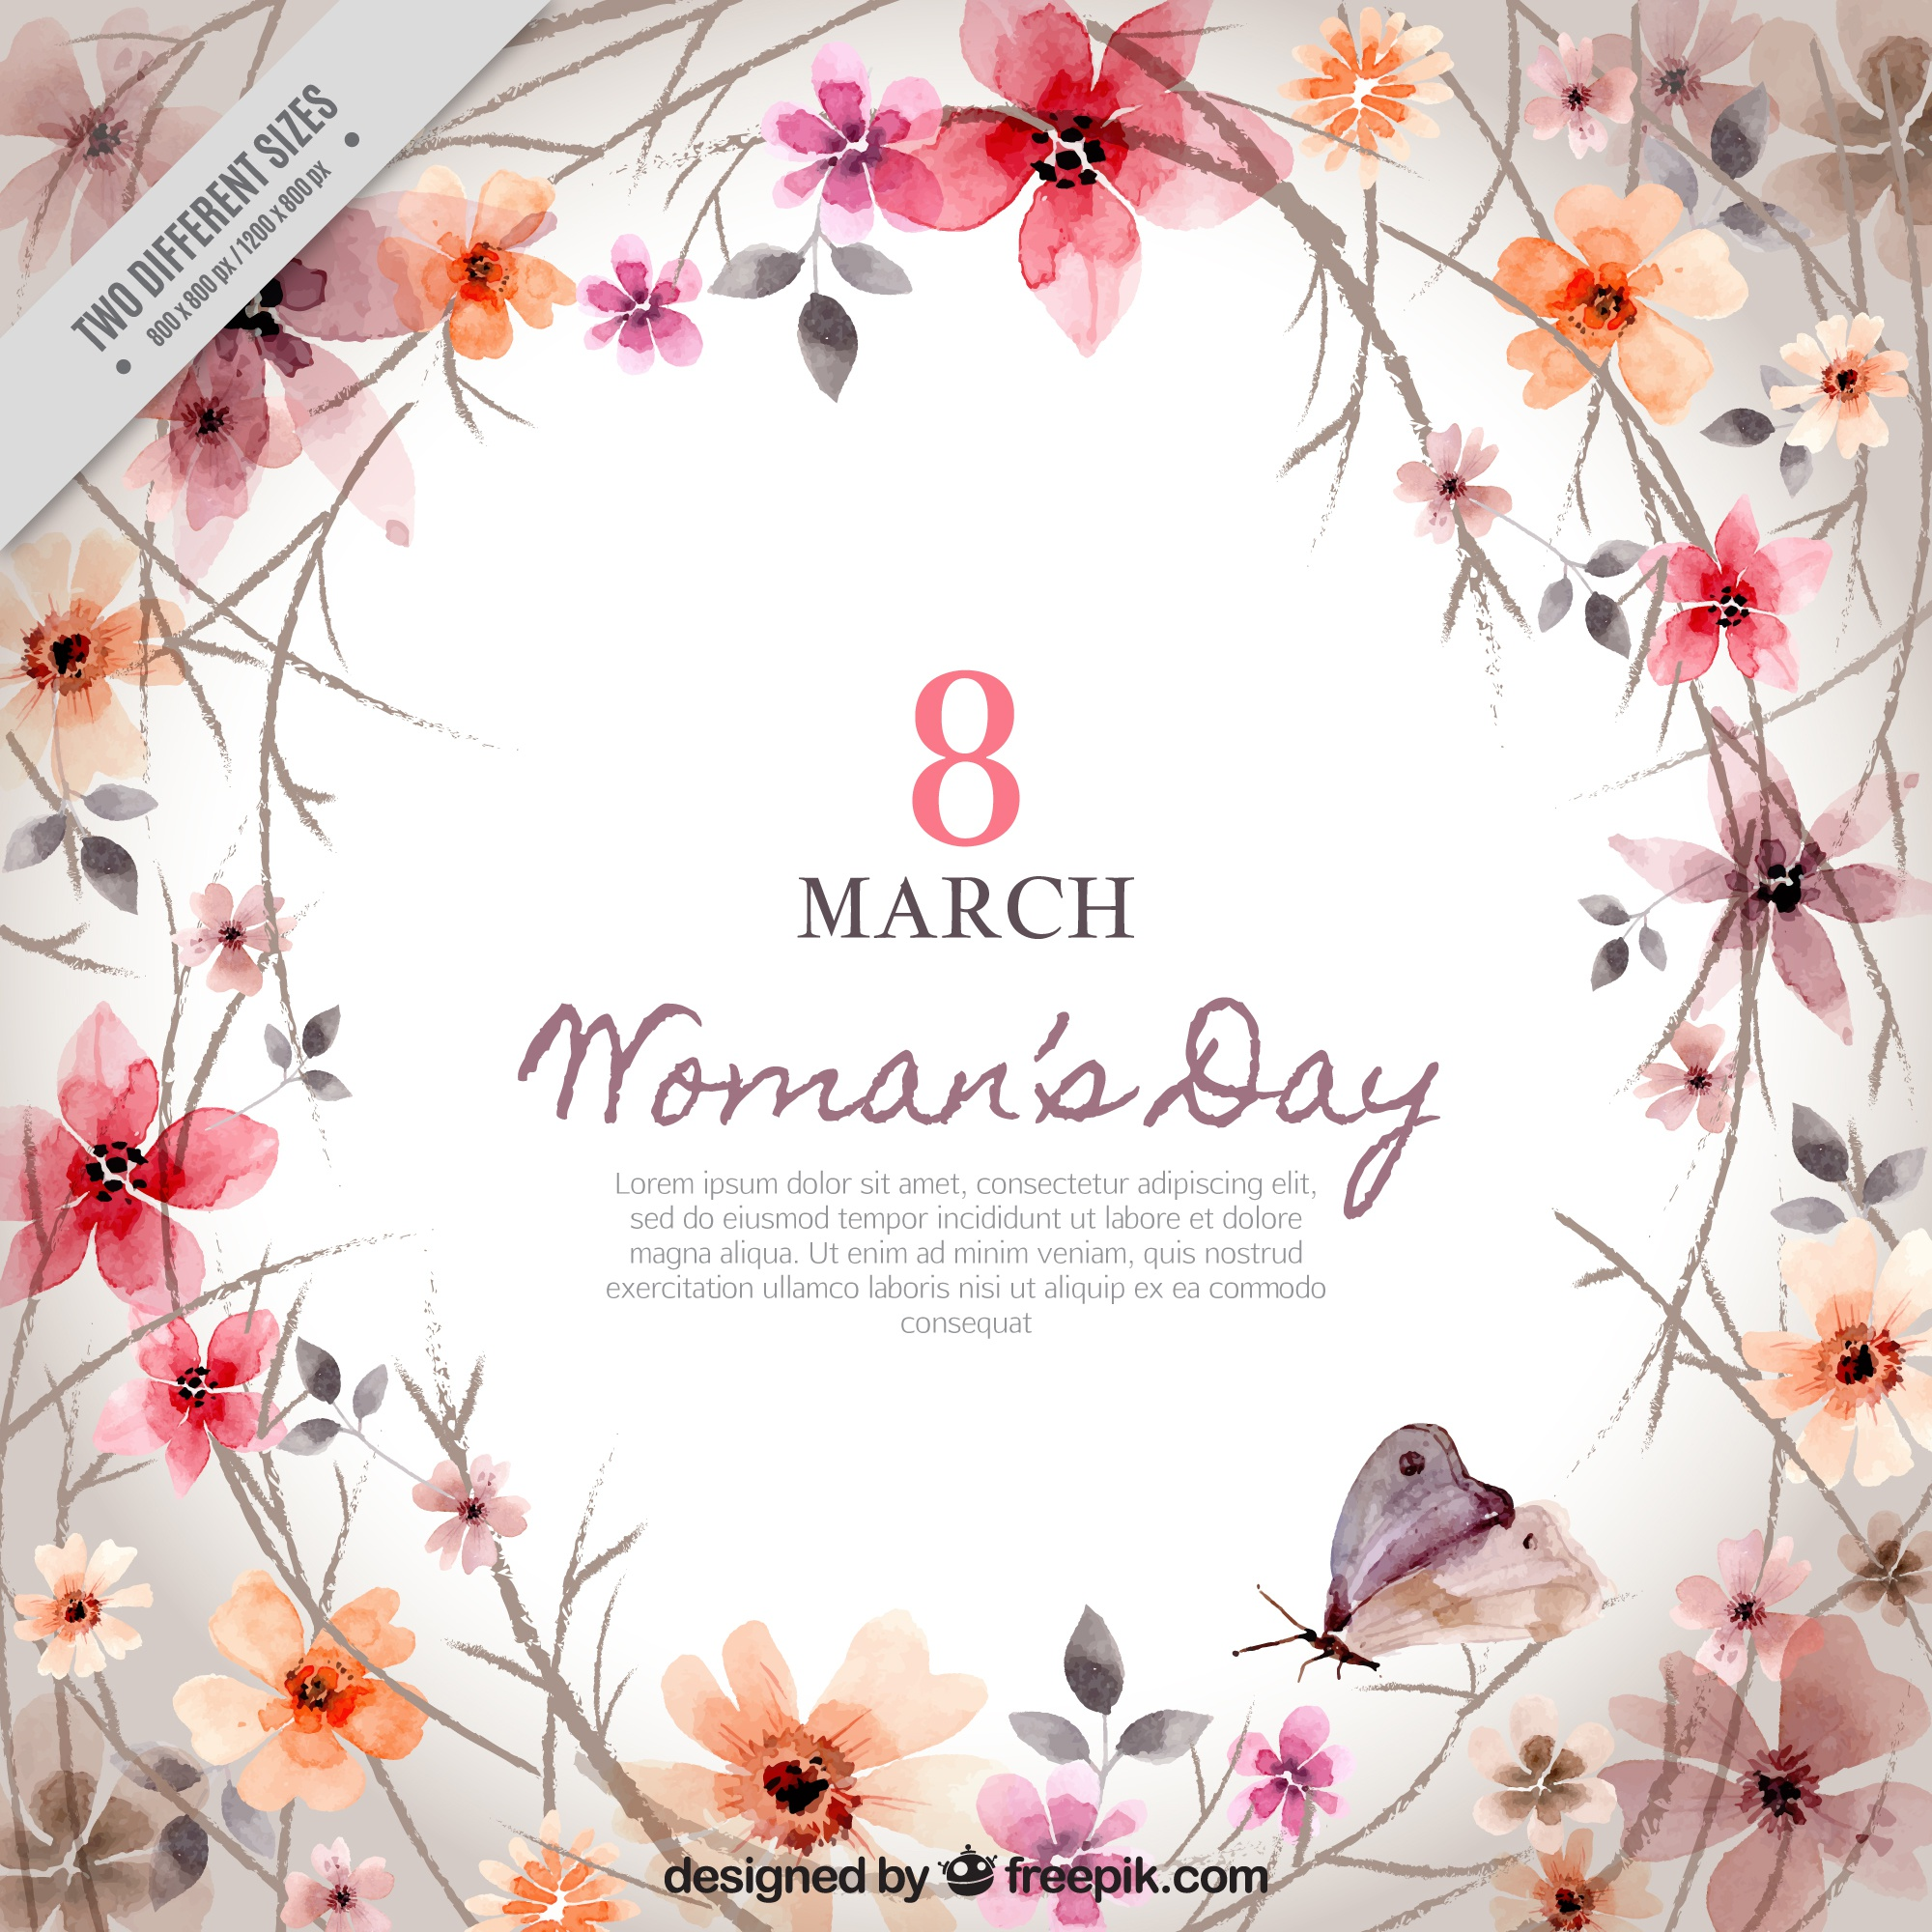 Background of floral decoration of woman's day